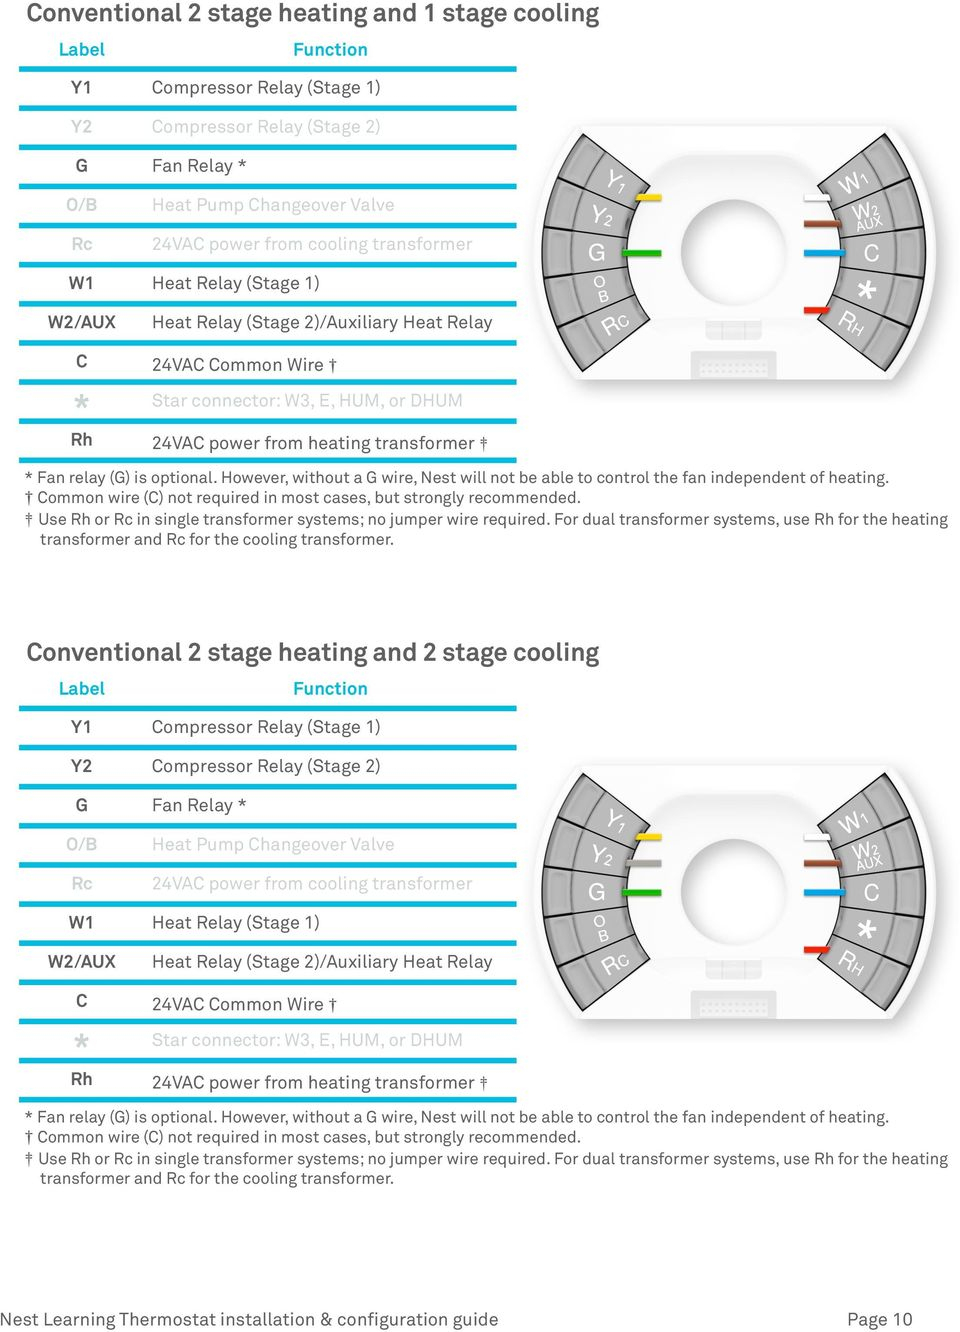 Nest Thermostat Installation Problems Wiring Diagram | Wiring Diagram - Nest Thermostat Wiring Diagram 2 Wire